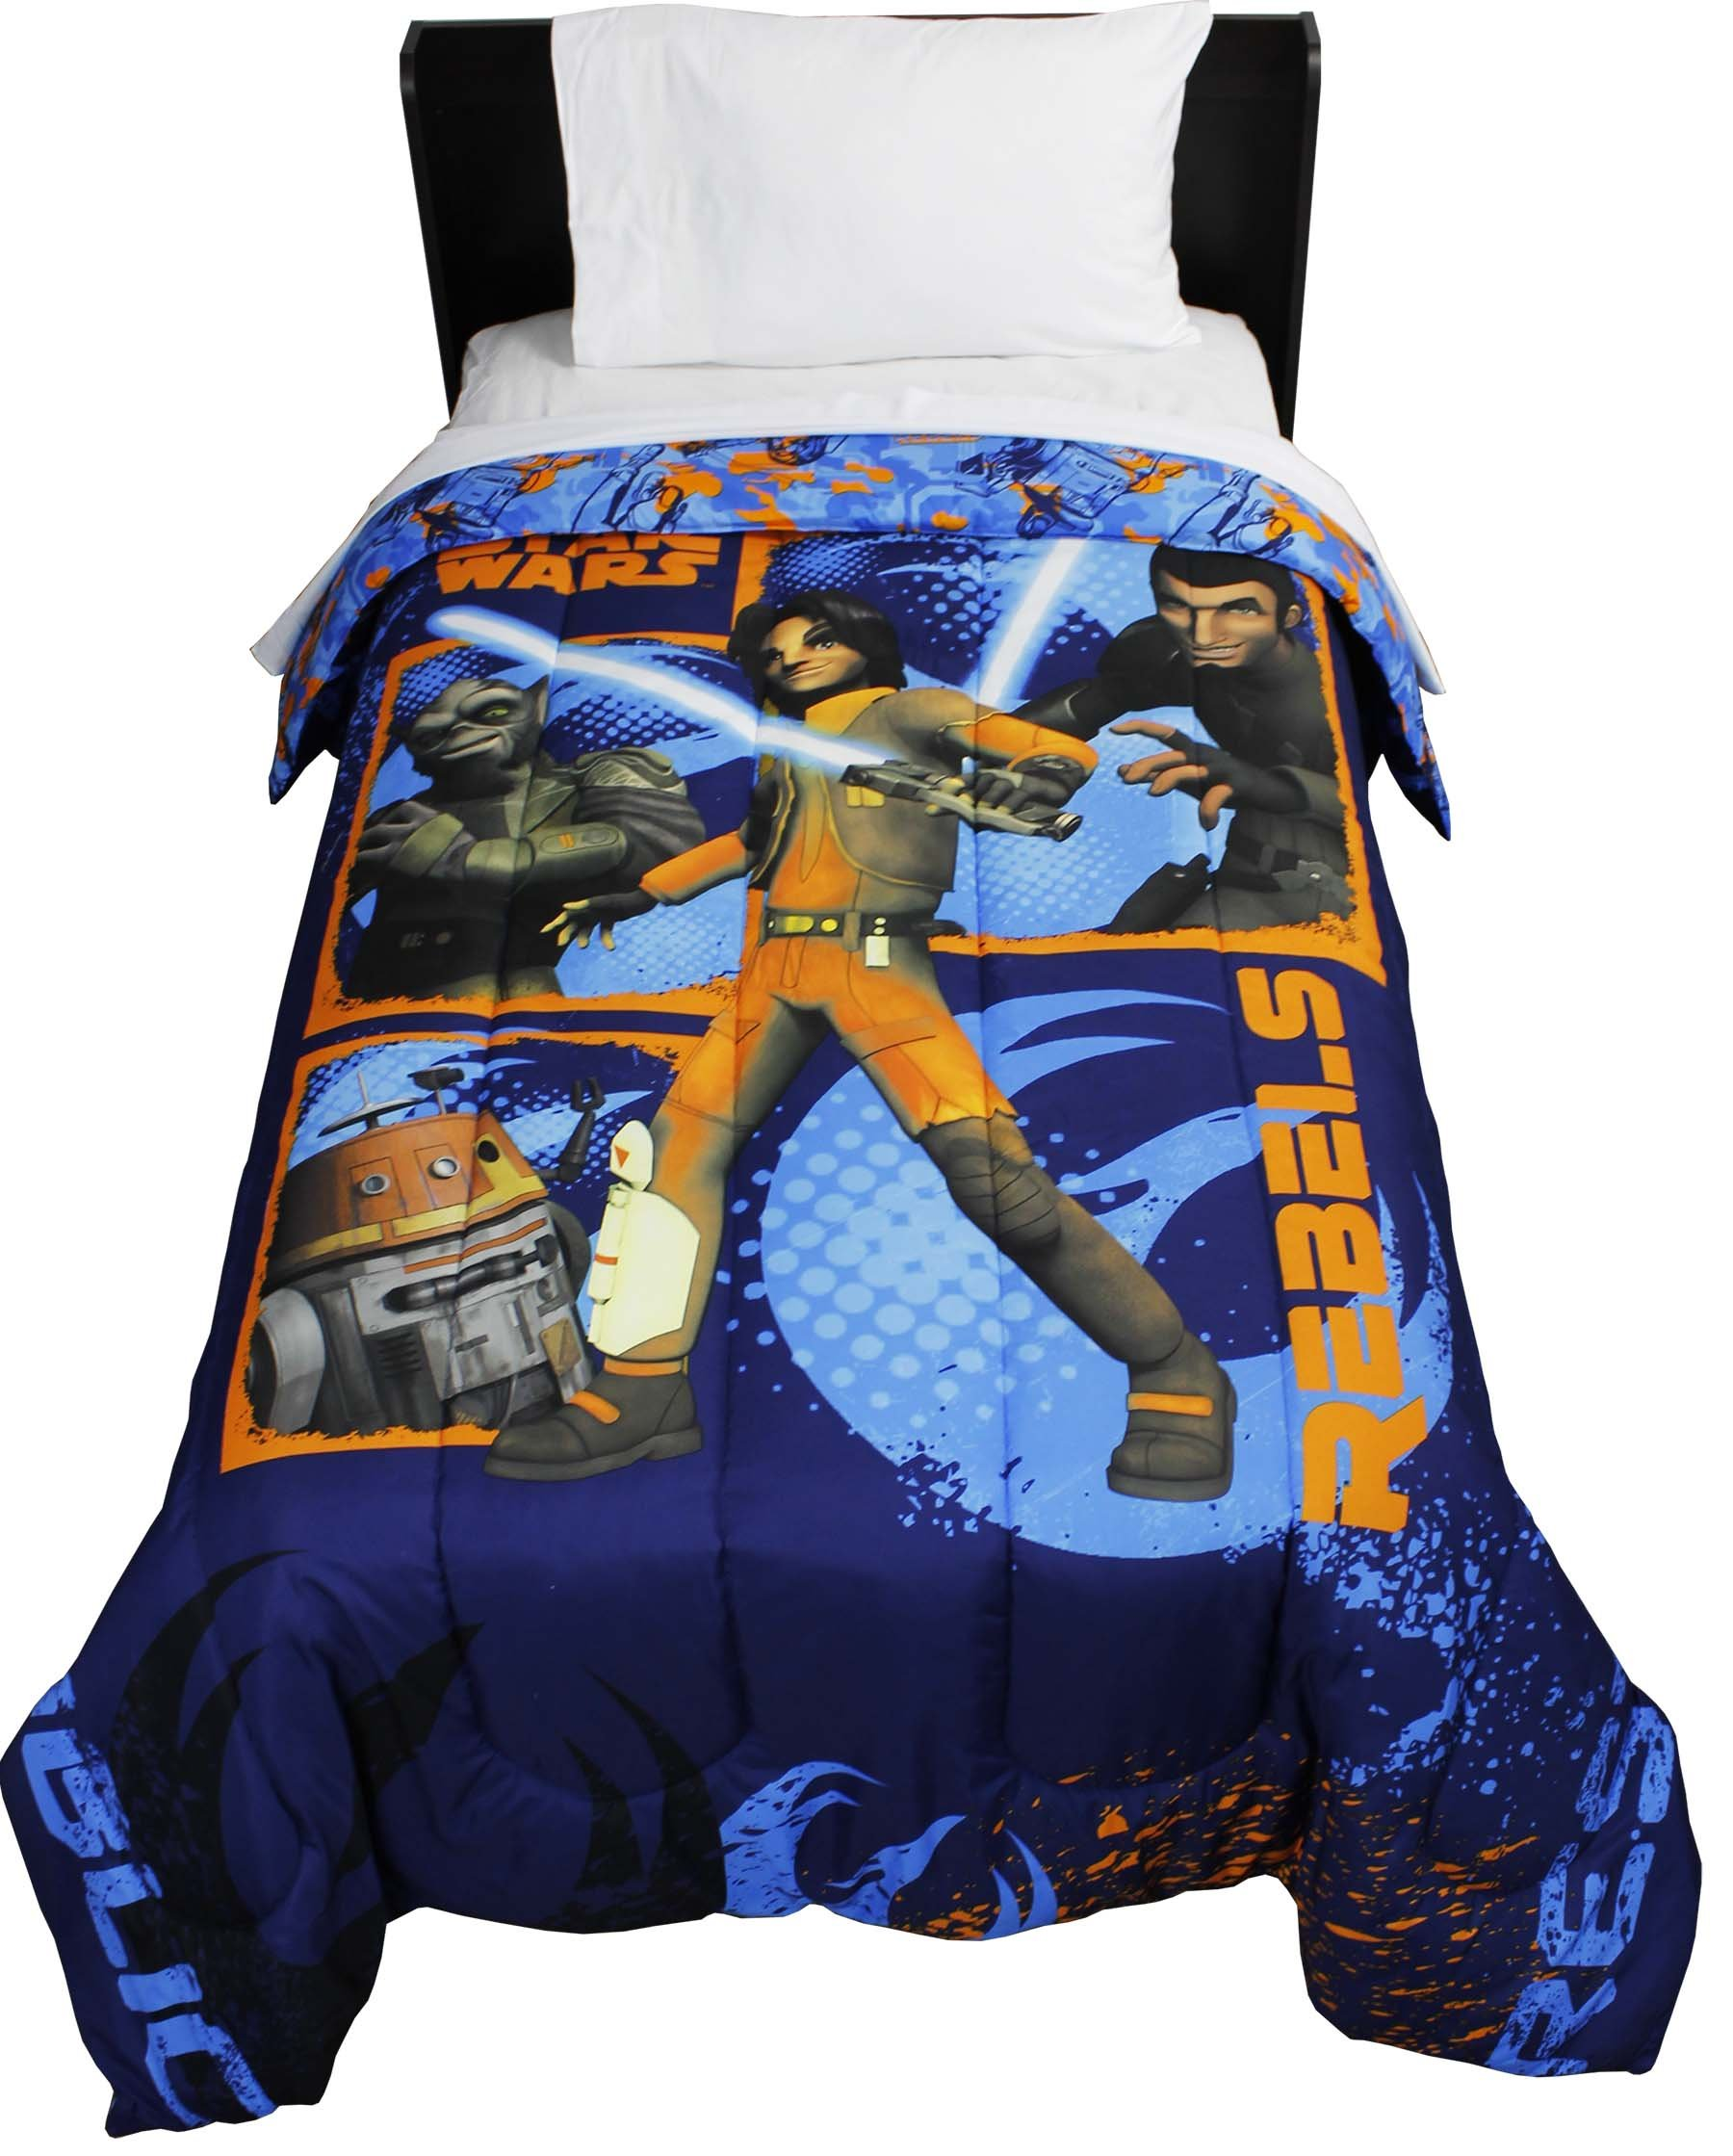 8pc Star Wars Twin Bedroom Set Rebels Fight Comforter Sheets and Window Panels with Tie-Backs by Disney (Image #6)